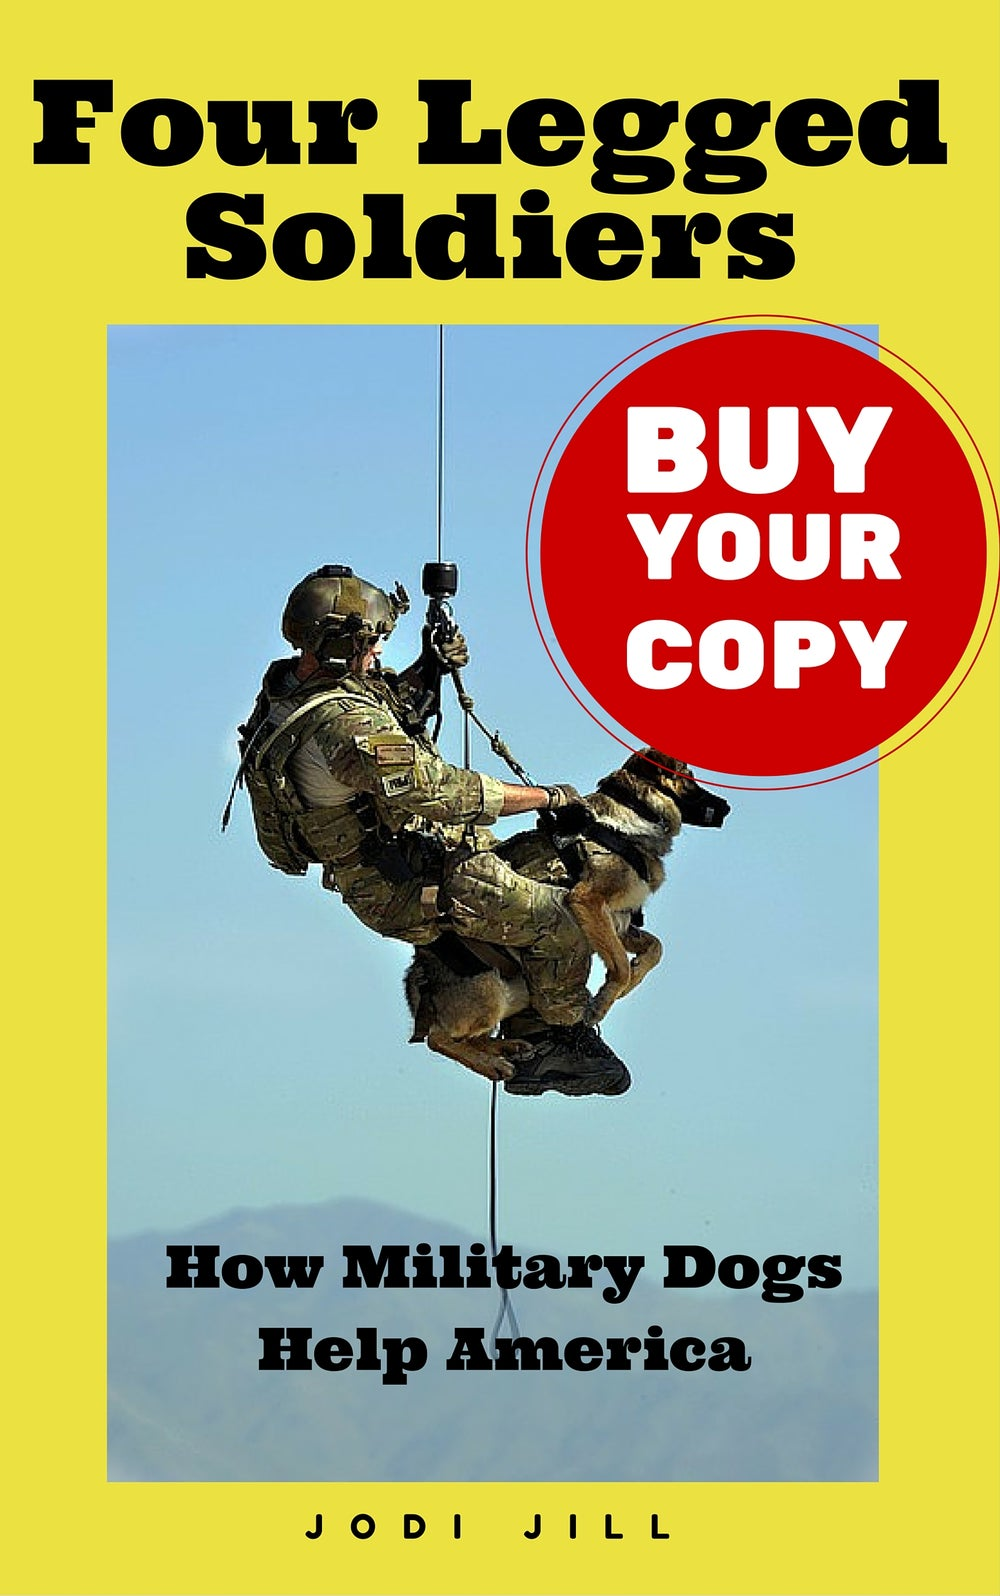 Image of BOOK - Four Legged Soldiers